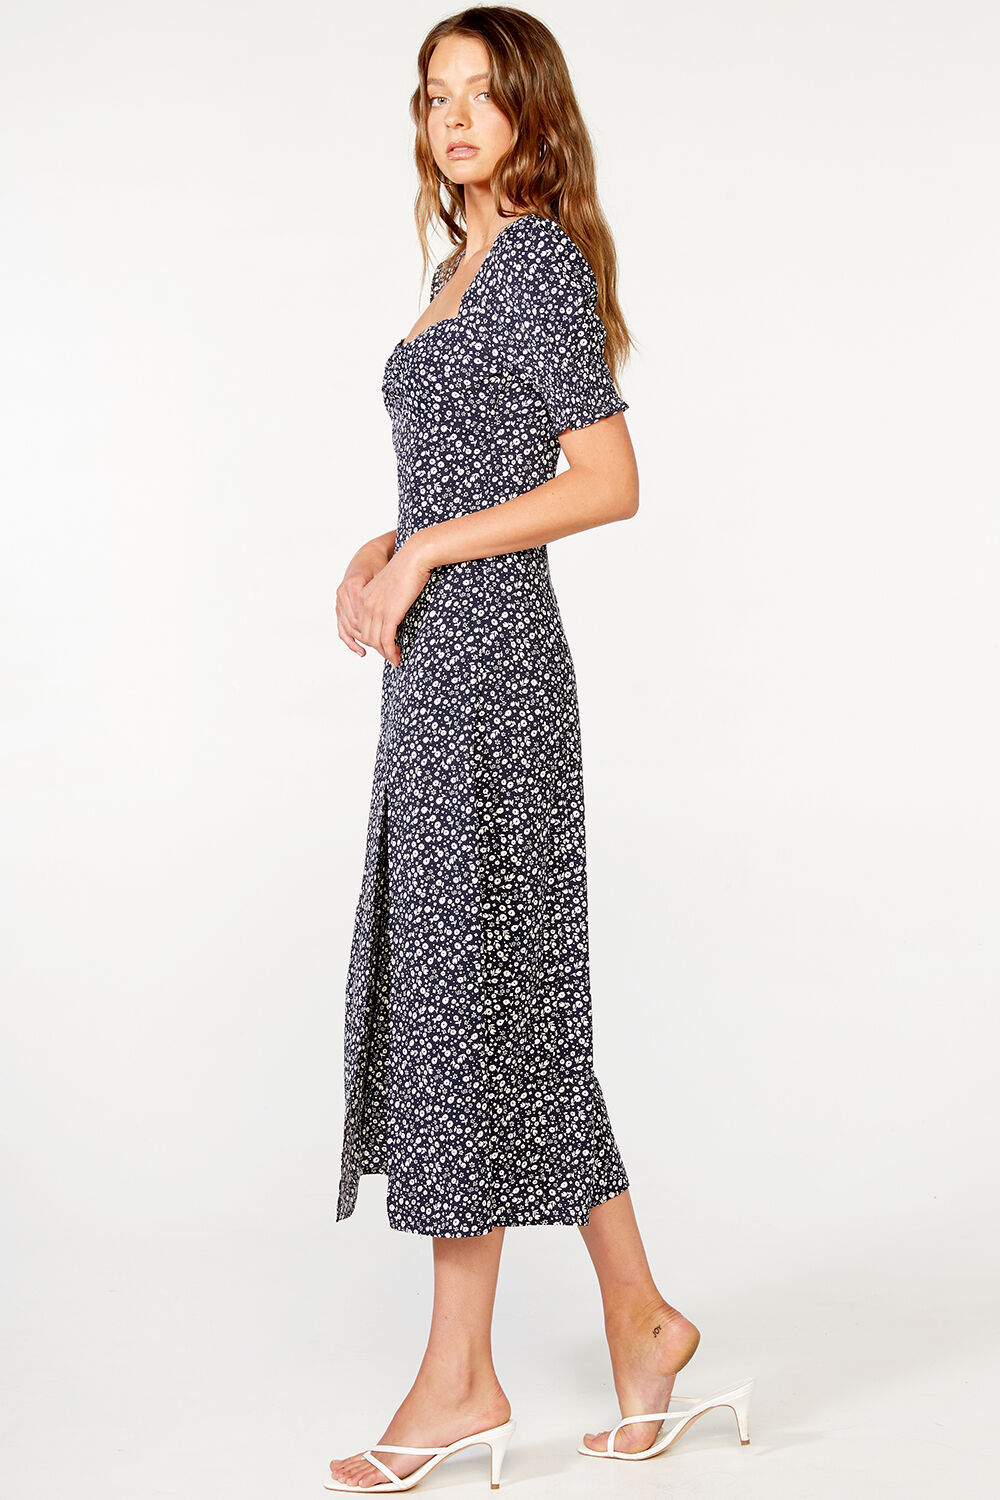 MILLIE FLORAL DRESS in colour DARK NAVY